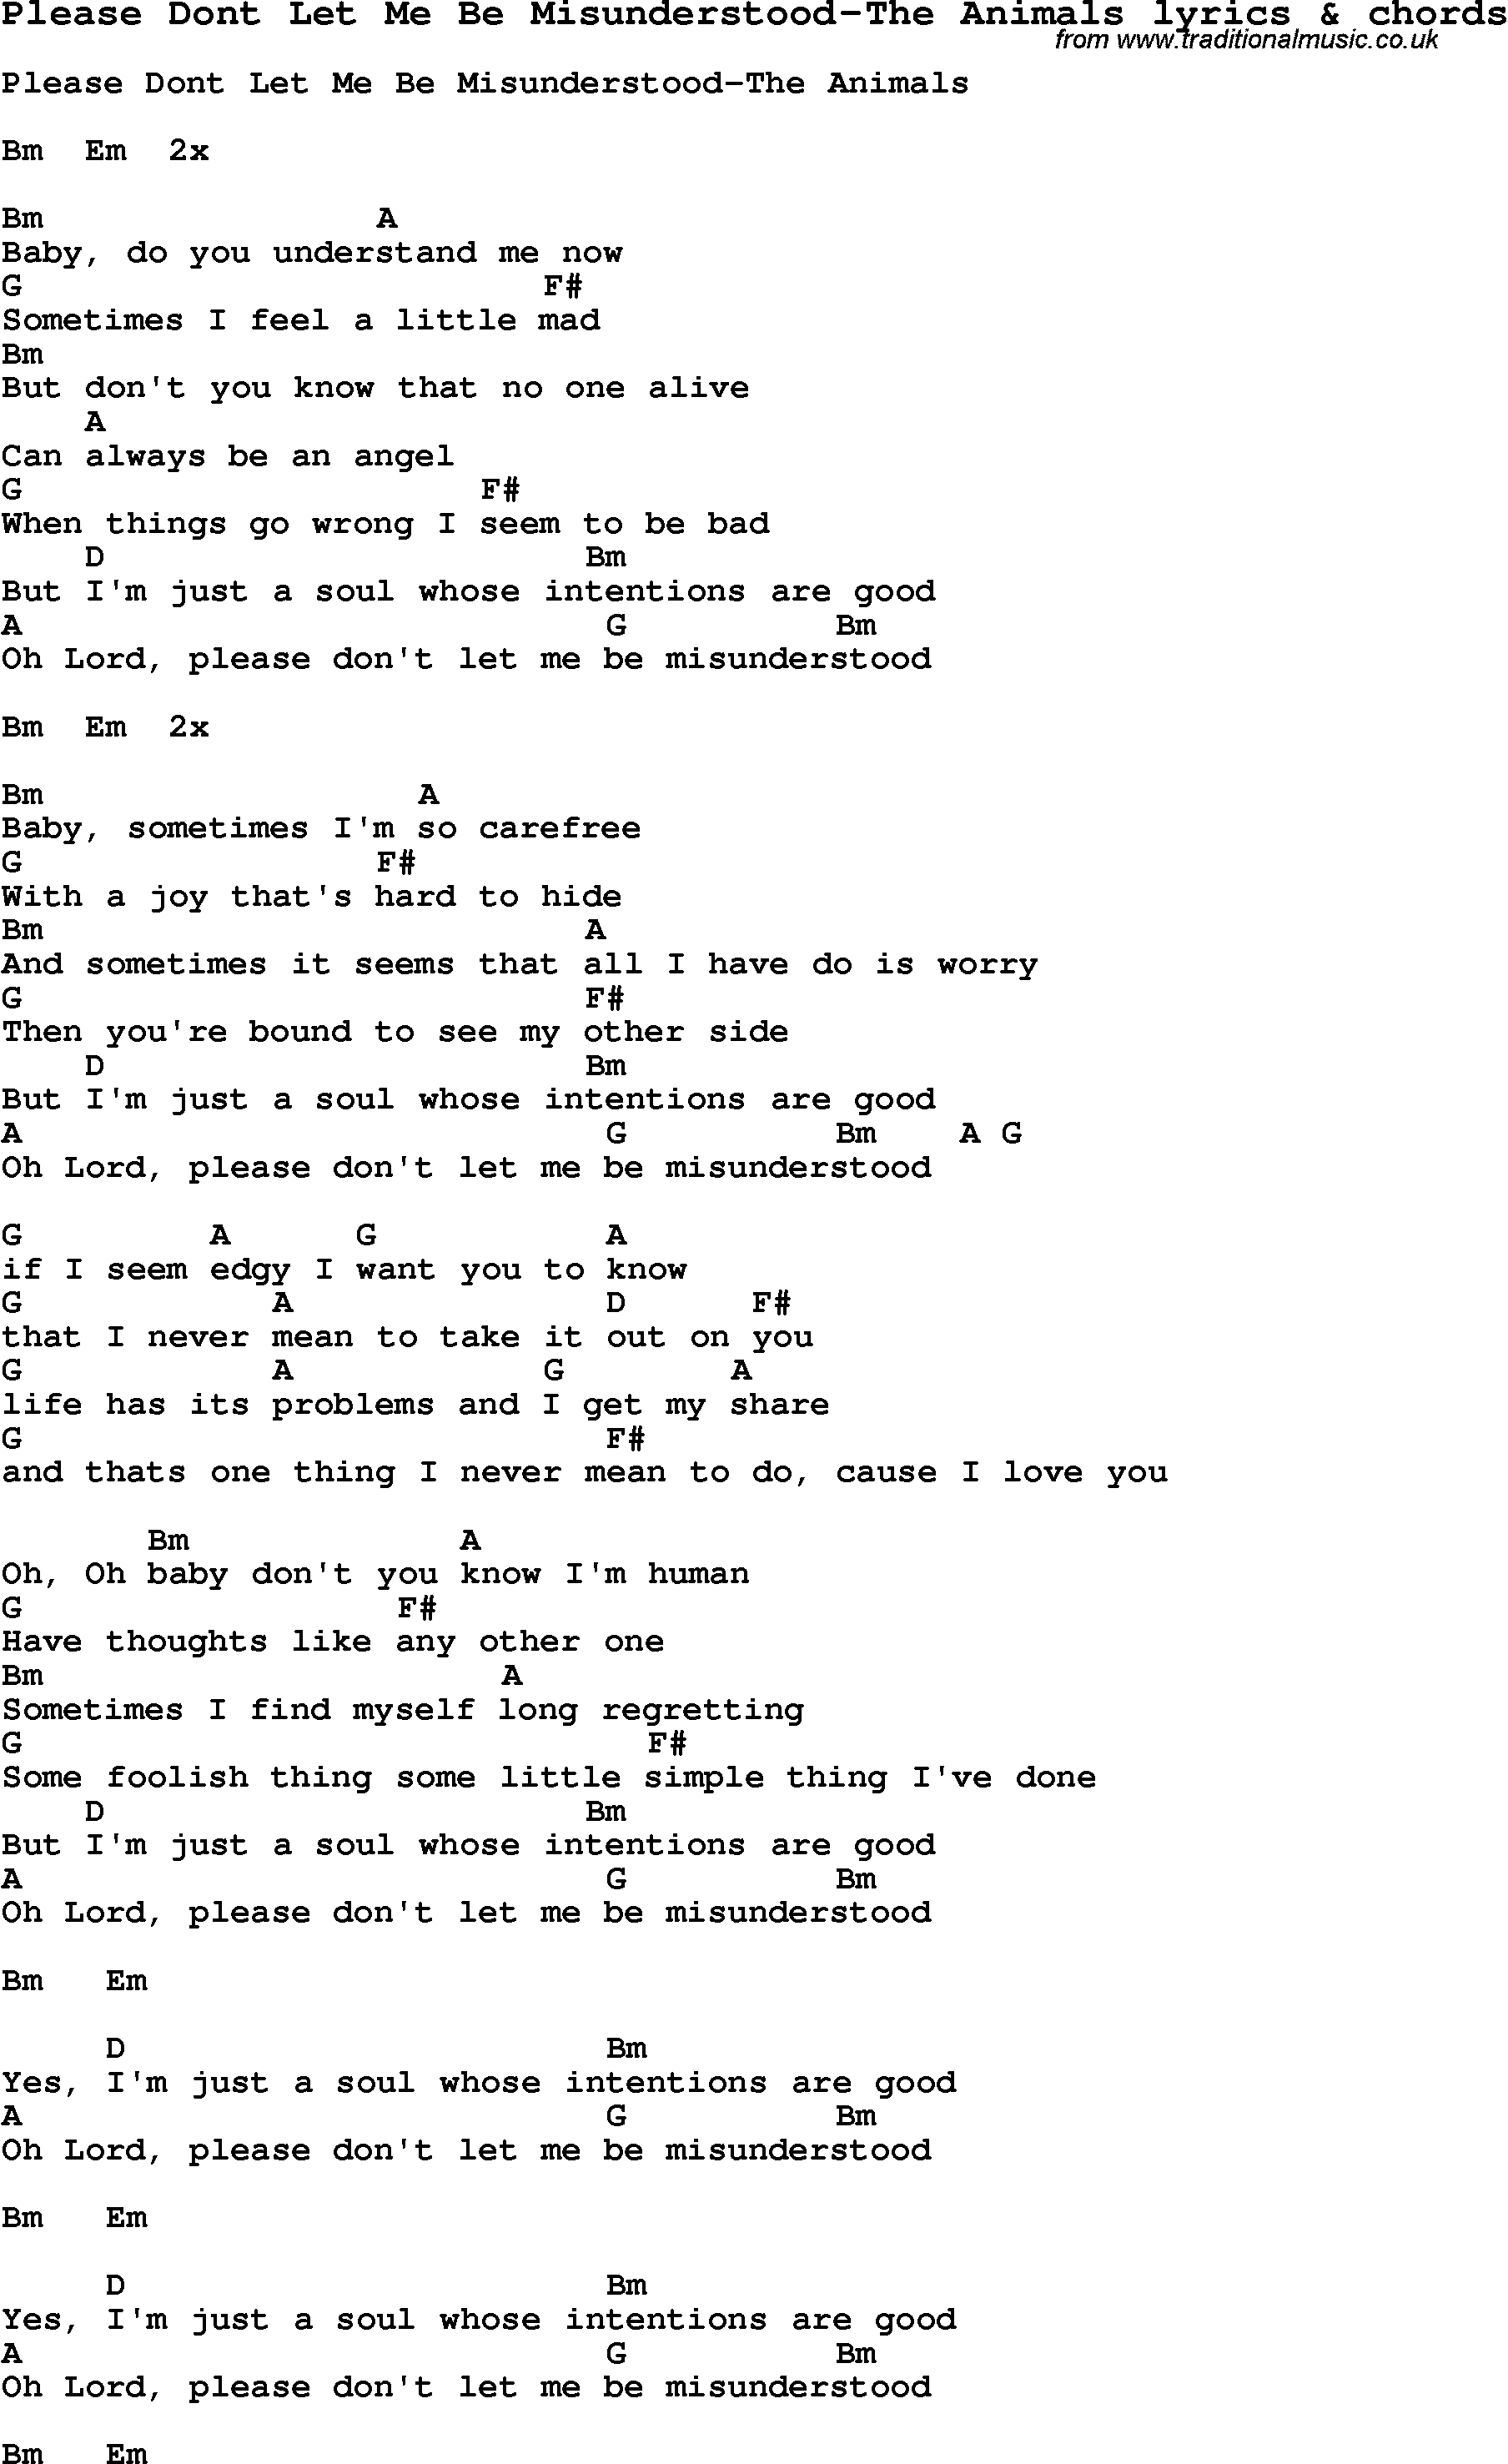 Love Song Lyrics with Chords for  Traditional Music Library